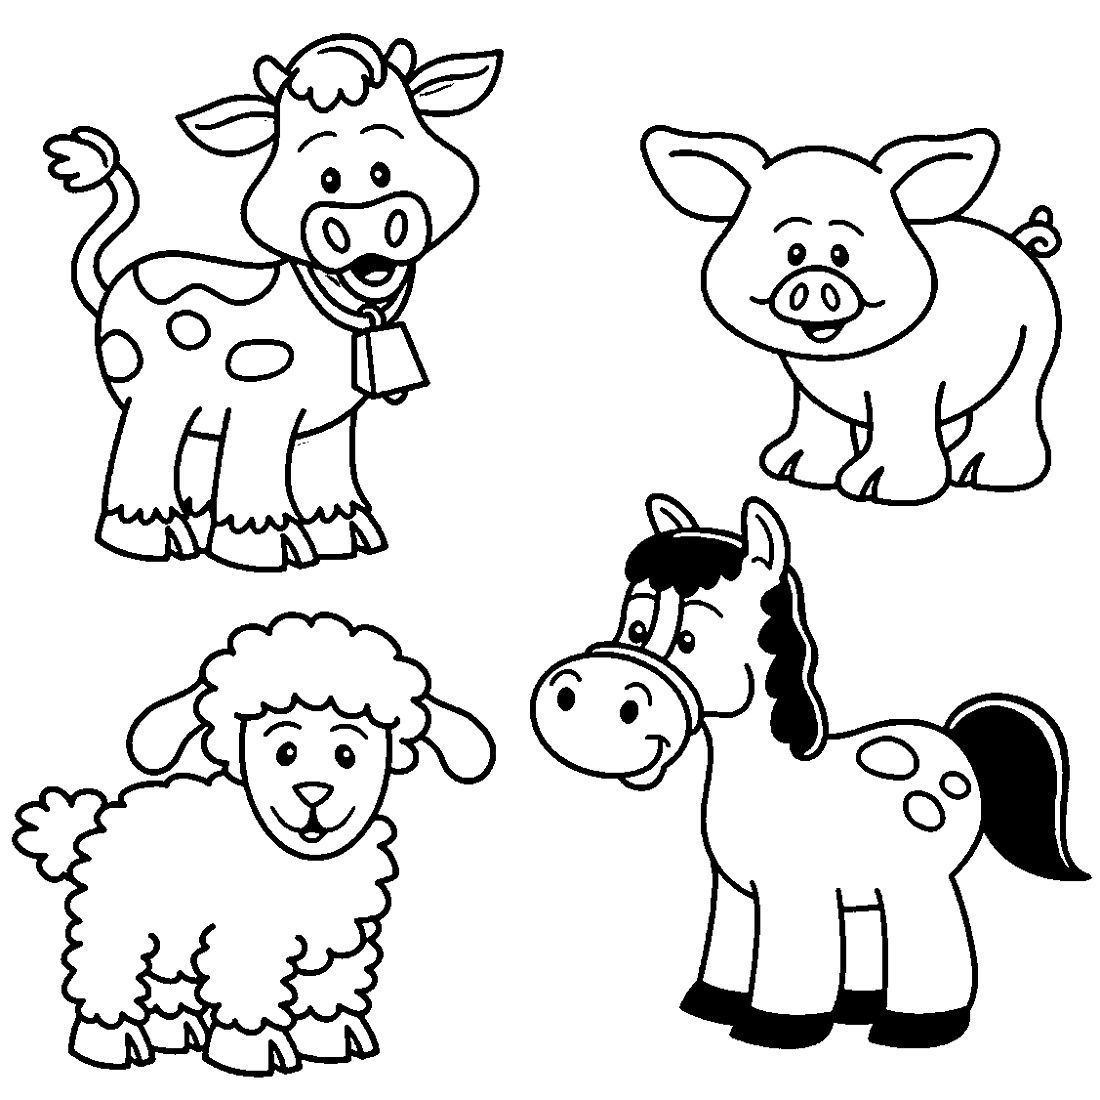 zoo animal coloring pages for preschool printable farm animal coloring for kindergarten k5 for coloring preschool zoo pages animal